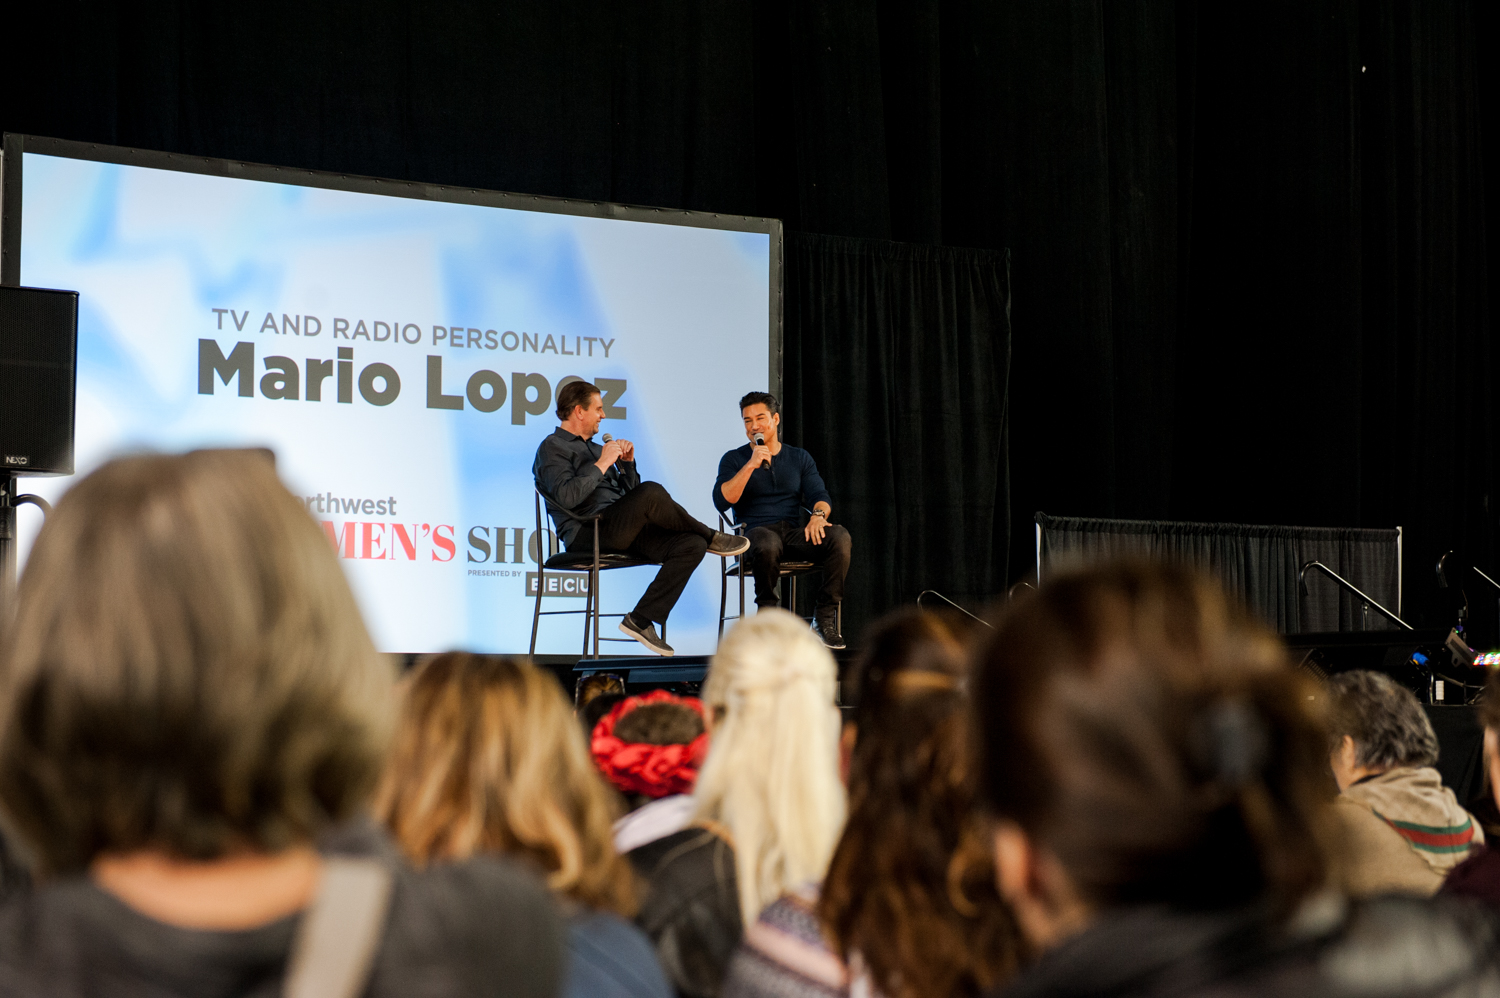 Mario Lopez headlined Saturday, March 9, 2019 at the So Northwest Women's Show presented by BECU on the Washington's Lottery Main Stage and we could not have been happier. When we picked our jaws up off the floor, we found A.C. Slater as delightful and talented in person as he is on the screen. Oh - and he can do the Cupid's Shuffle like no one else! (Image: Elizabeth Crook / Seattle Refined)